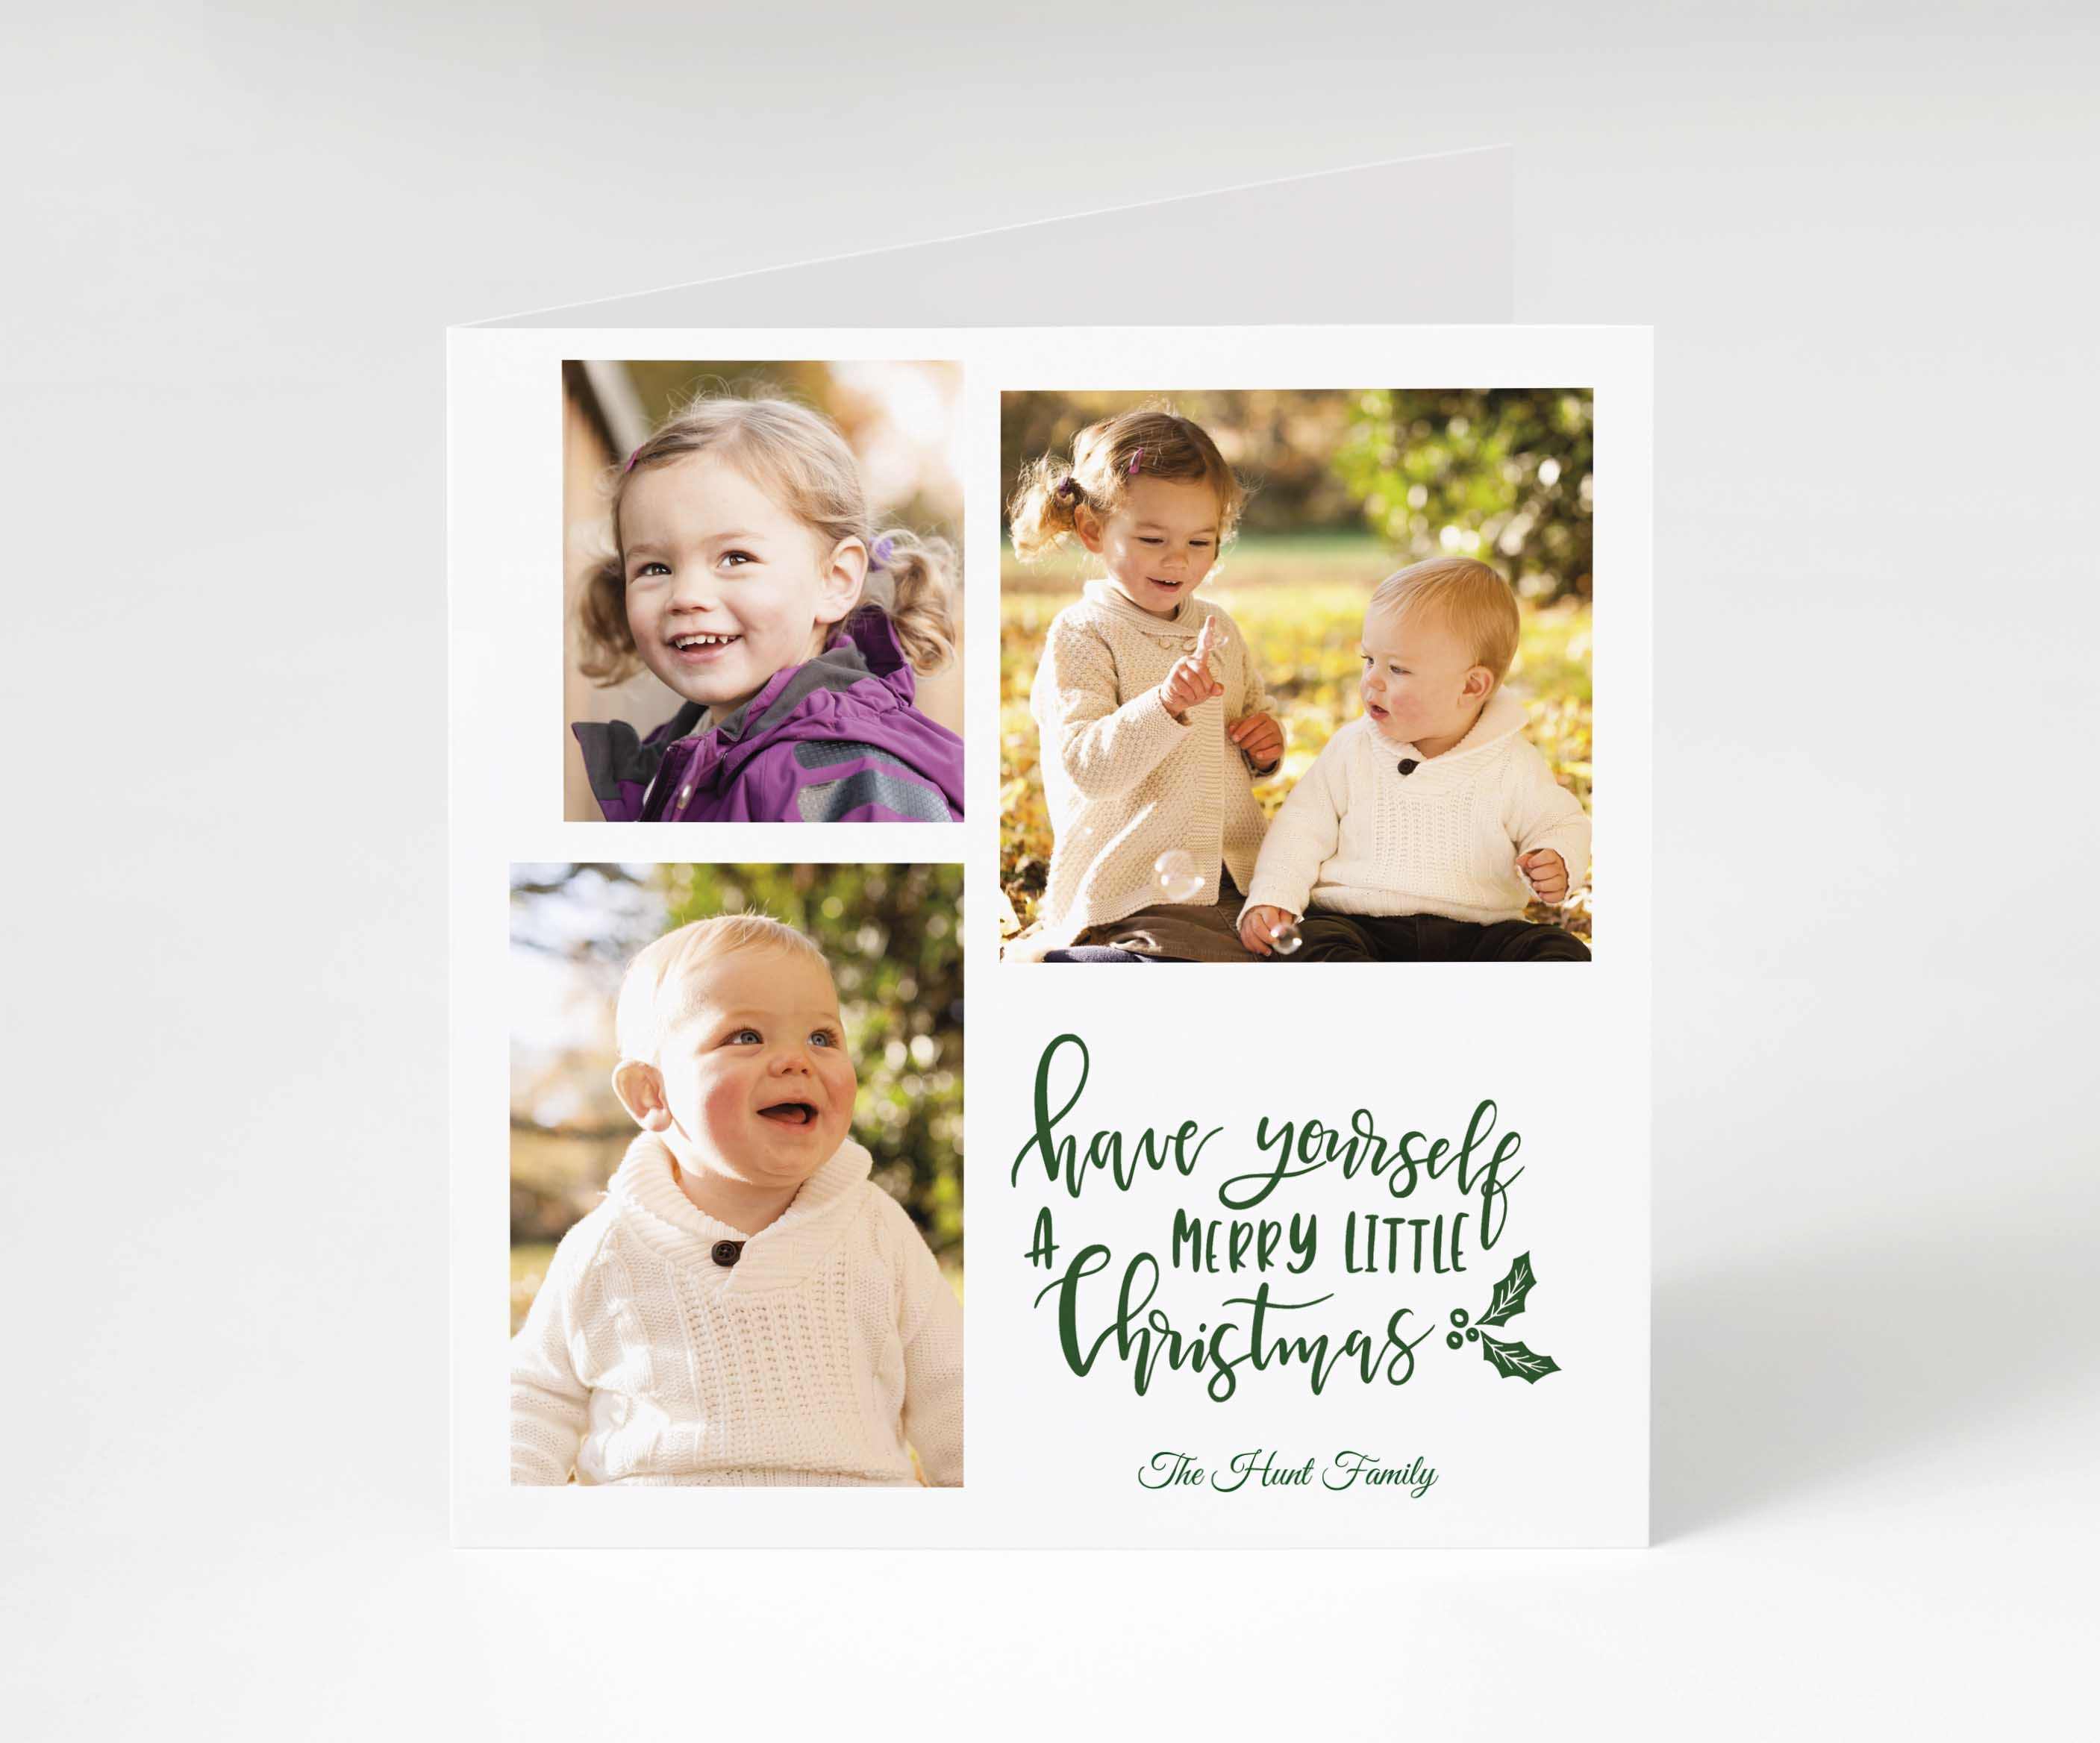 A Merry Little Christmas Card